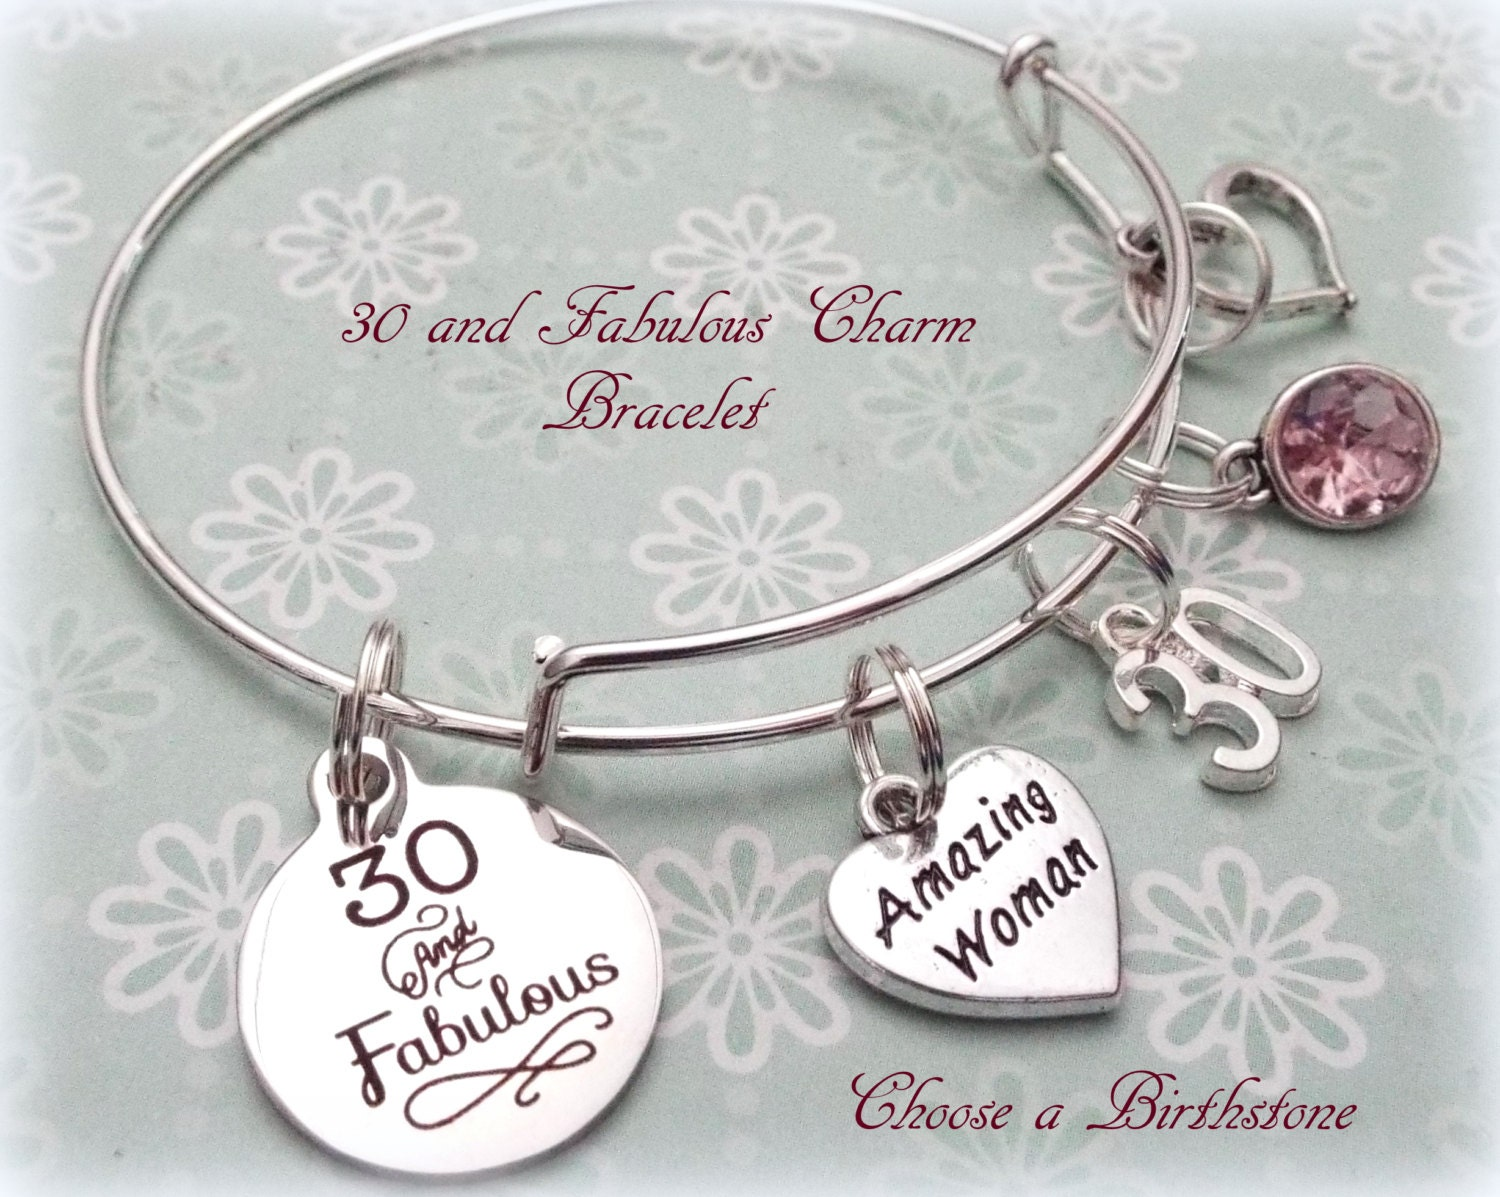 30th birthday gift 30 and fabulous charm bracelet birthday gift 30th birthday gift 30 and fabulous charm bracelet birthday gift for girlfriend best friend gift friend birthday gift gift for friend negle Image collections